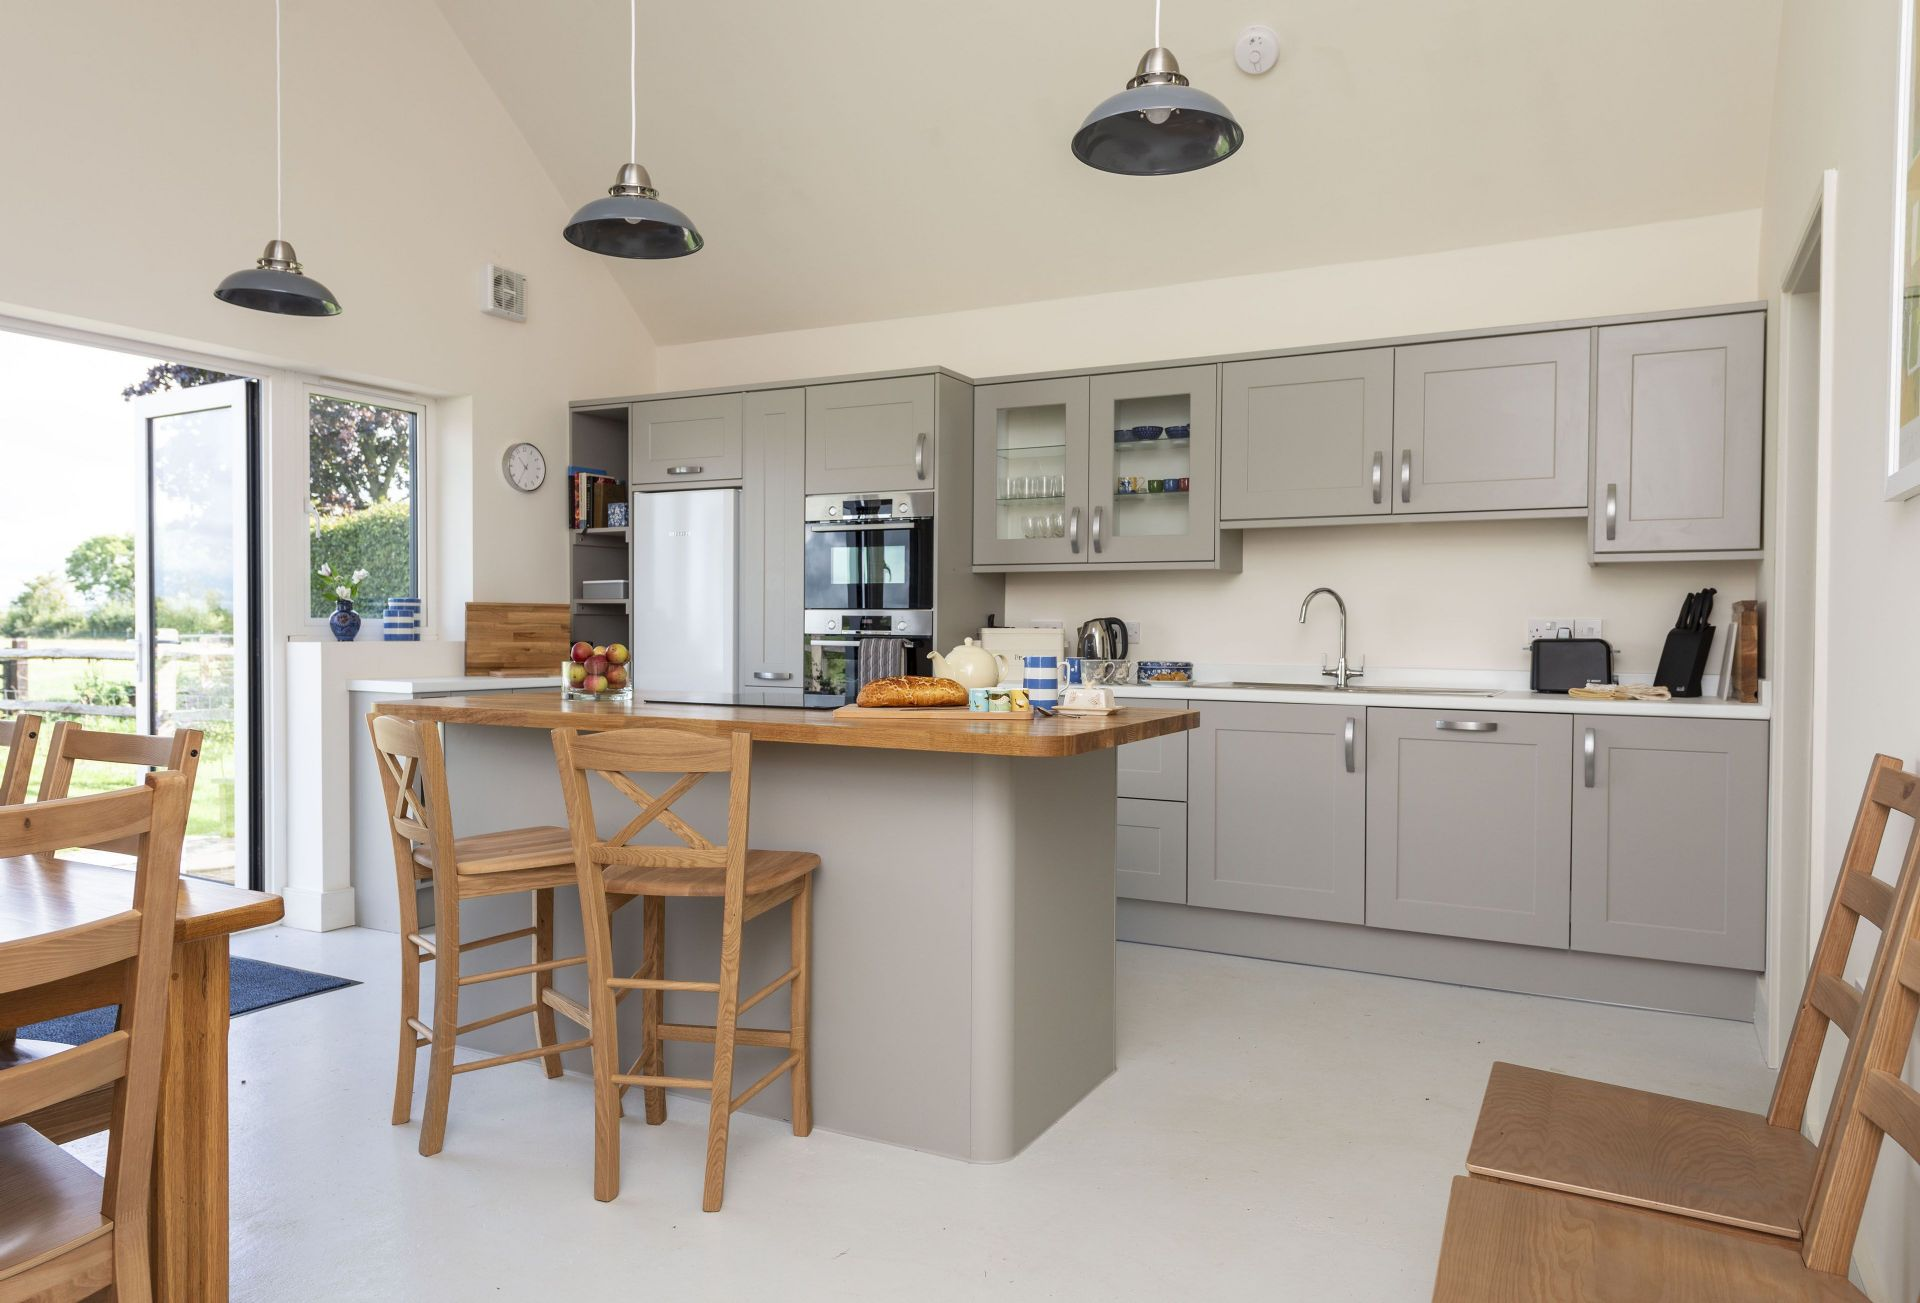 Stable Cottage at Draycott is located in Somerset and surrounding villages